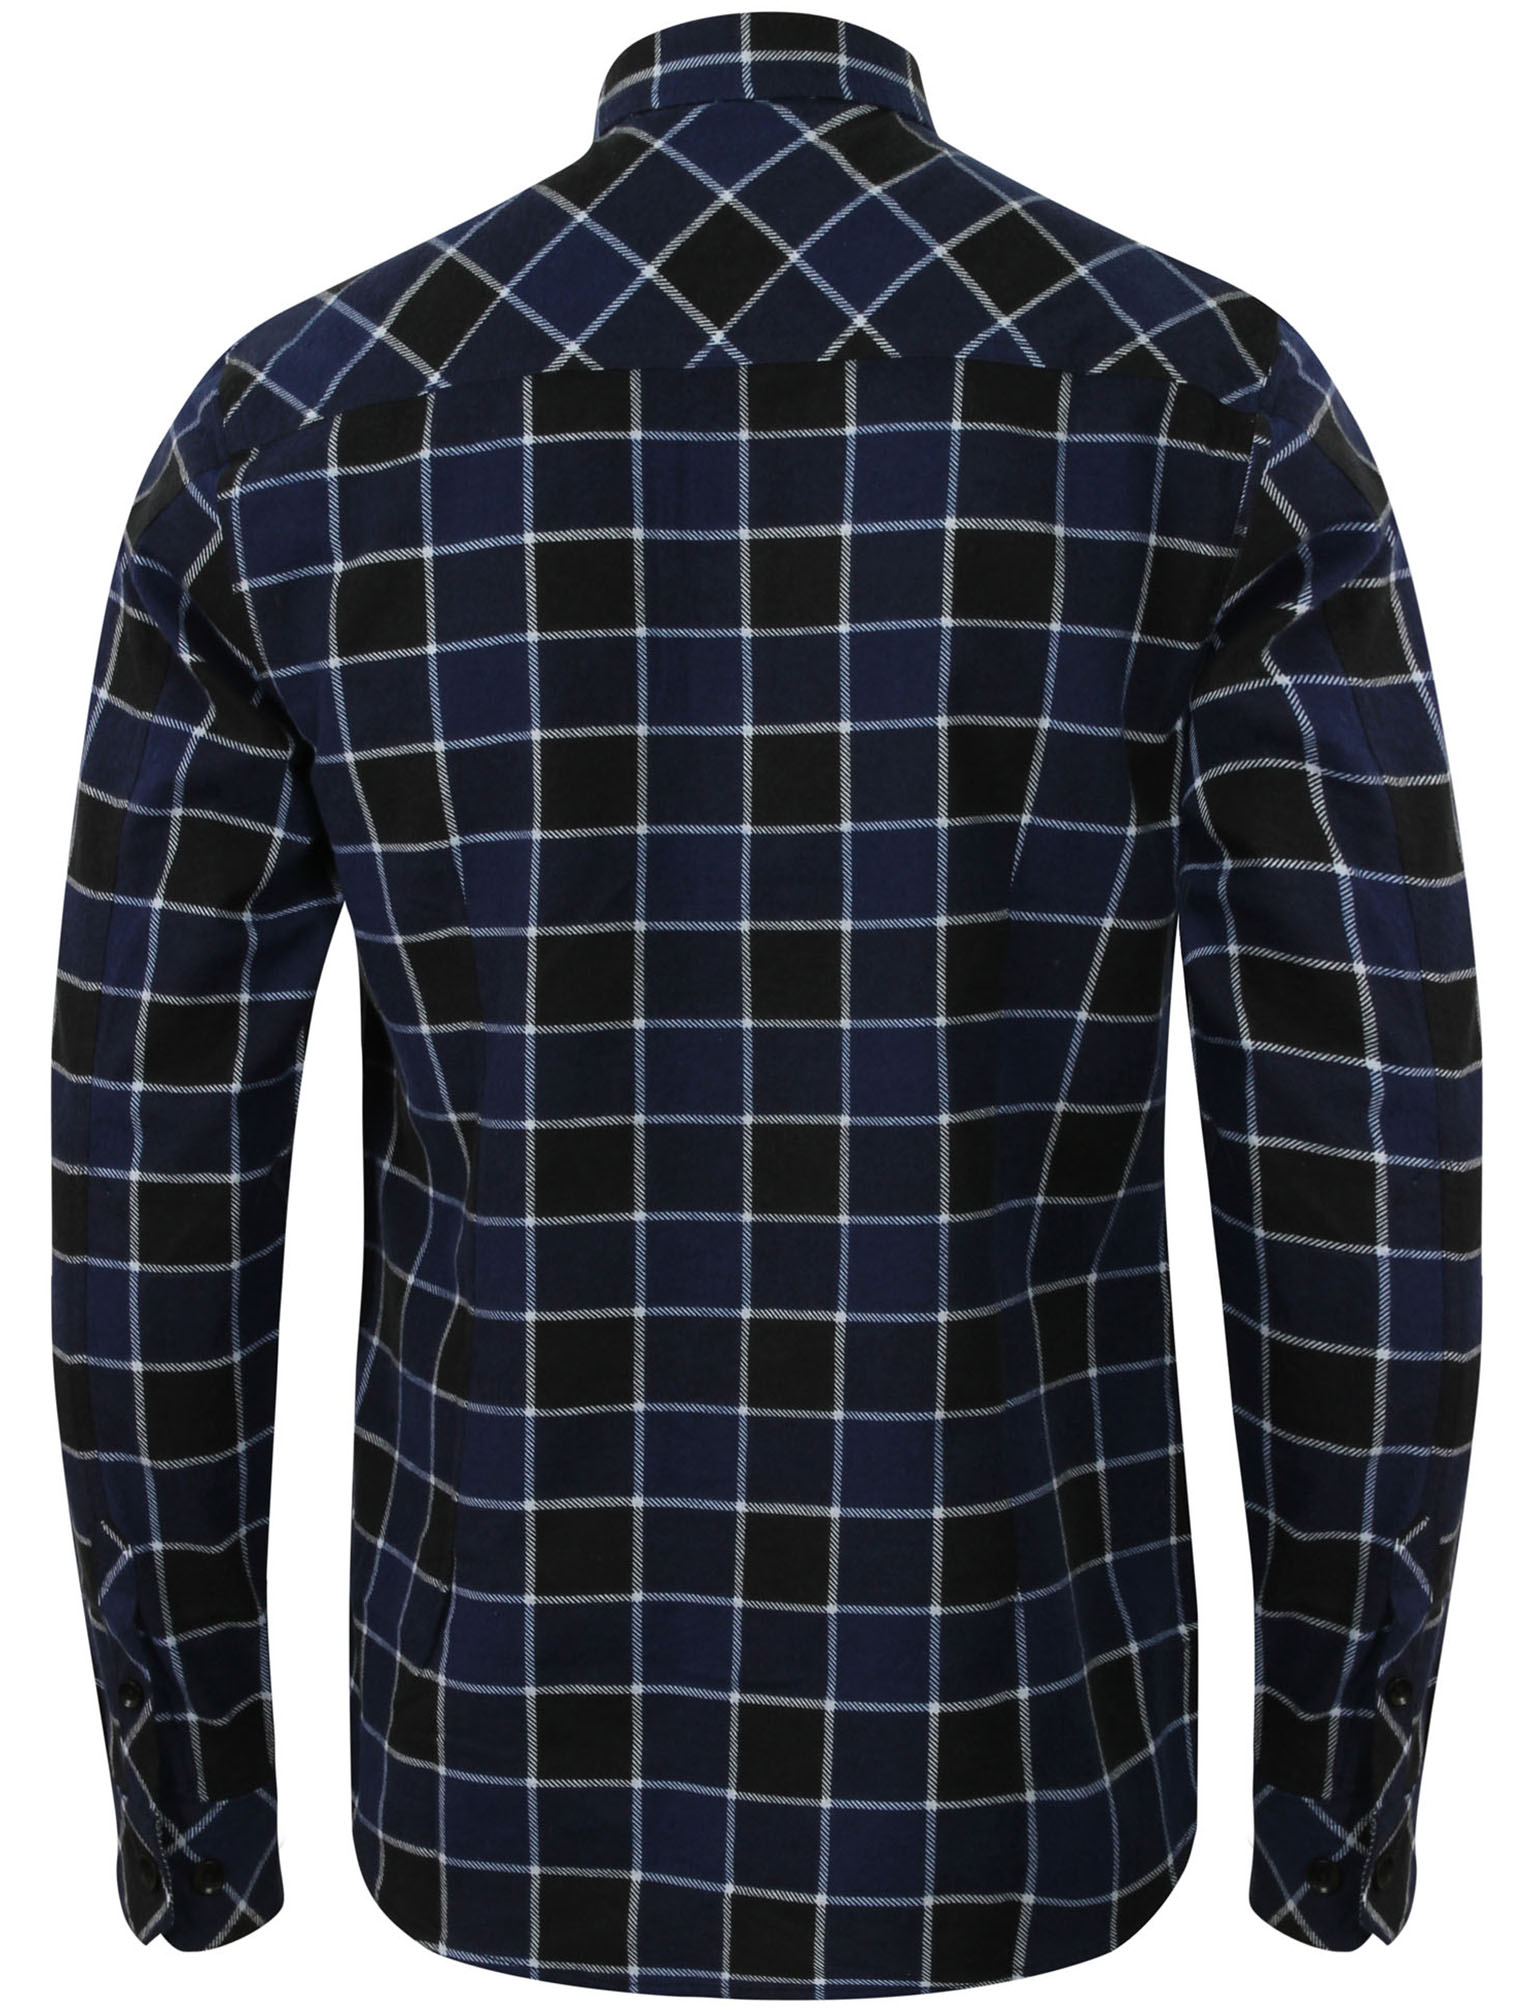 New-Mens-Tokyo-Laundry-Cotton-Long-Sleeve-Checked-Flannel-Shirt-Size-S-XL thumbnail 5